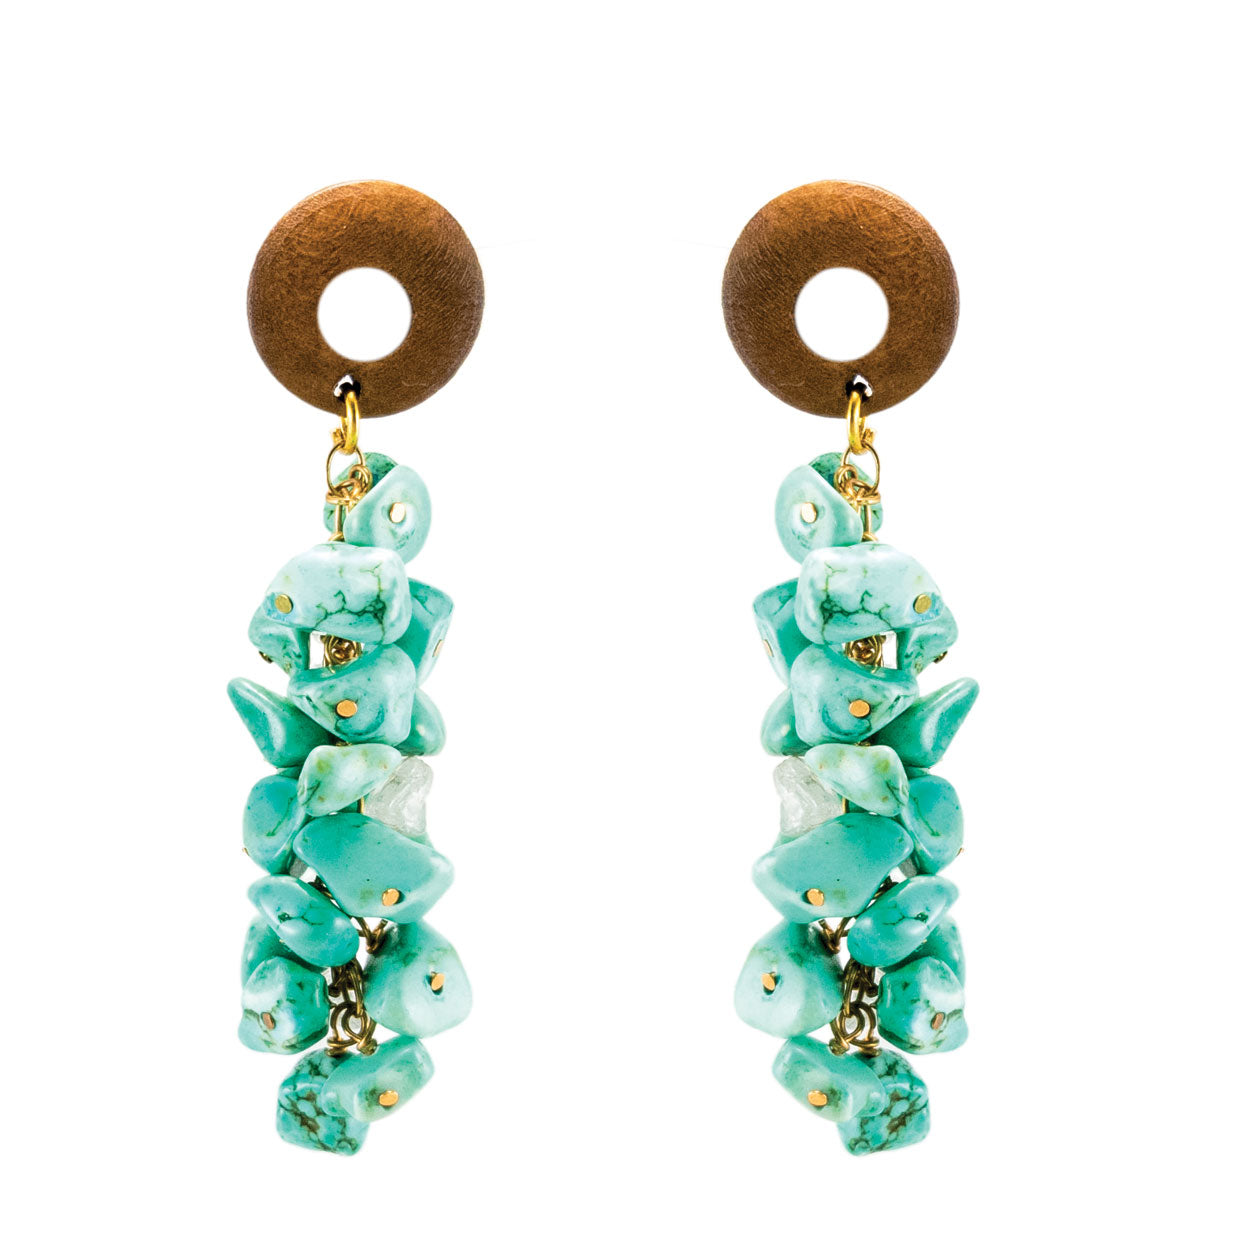 tropical style gold postback earrings with wood top and hanging turquoise stones.